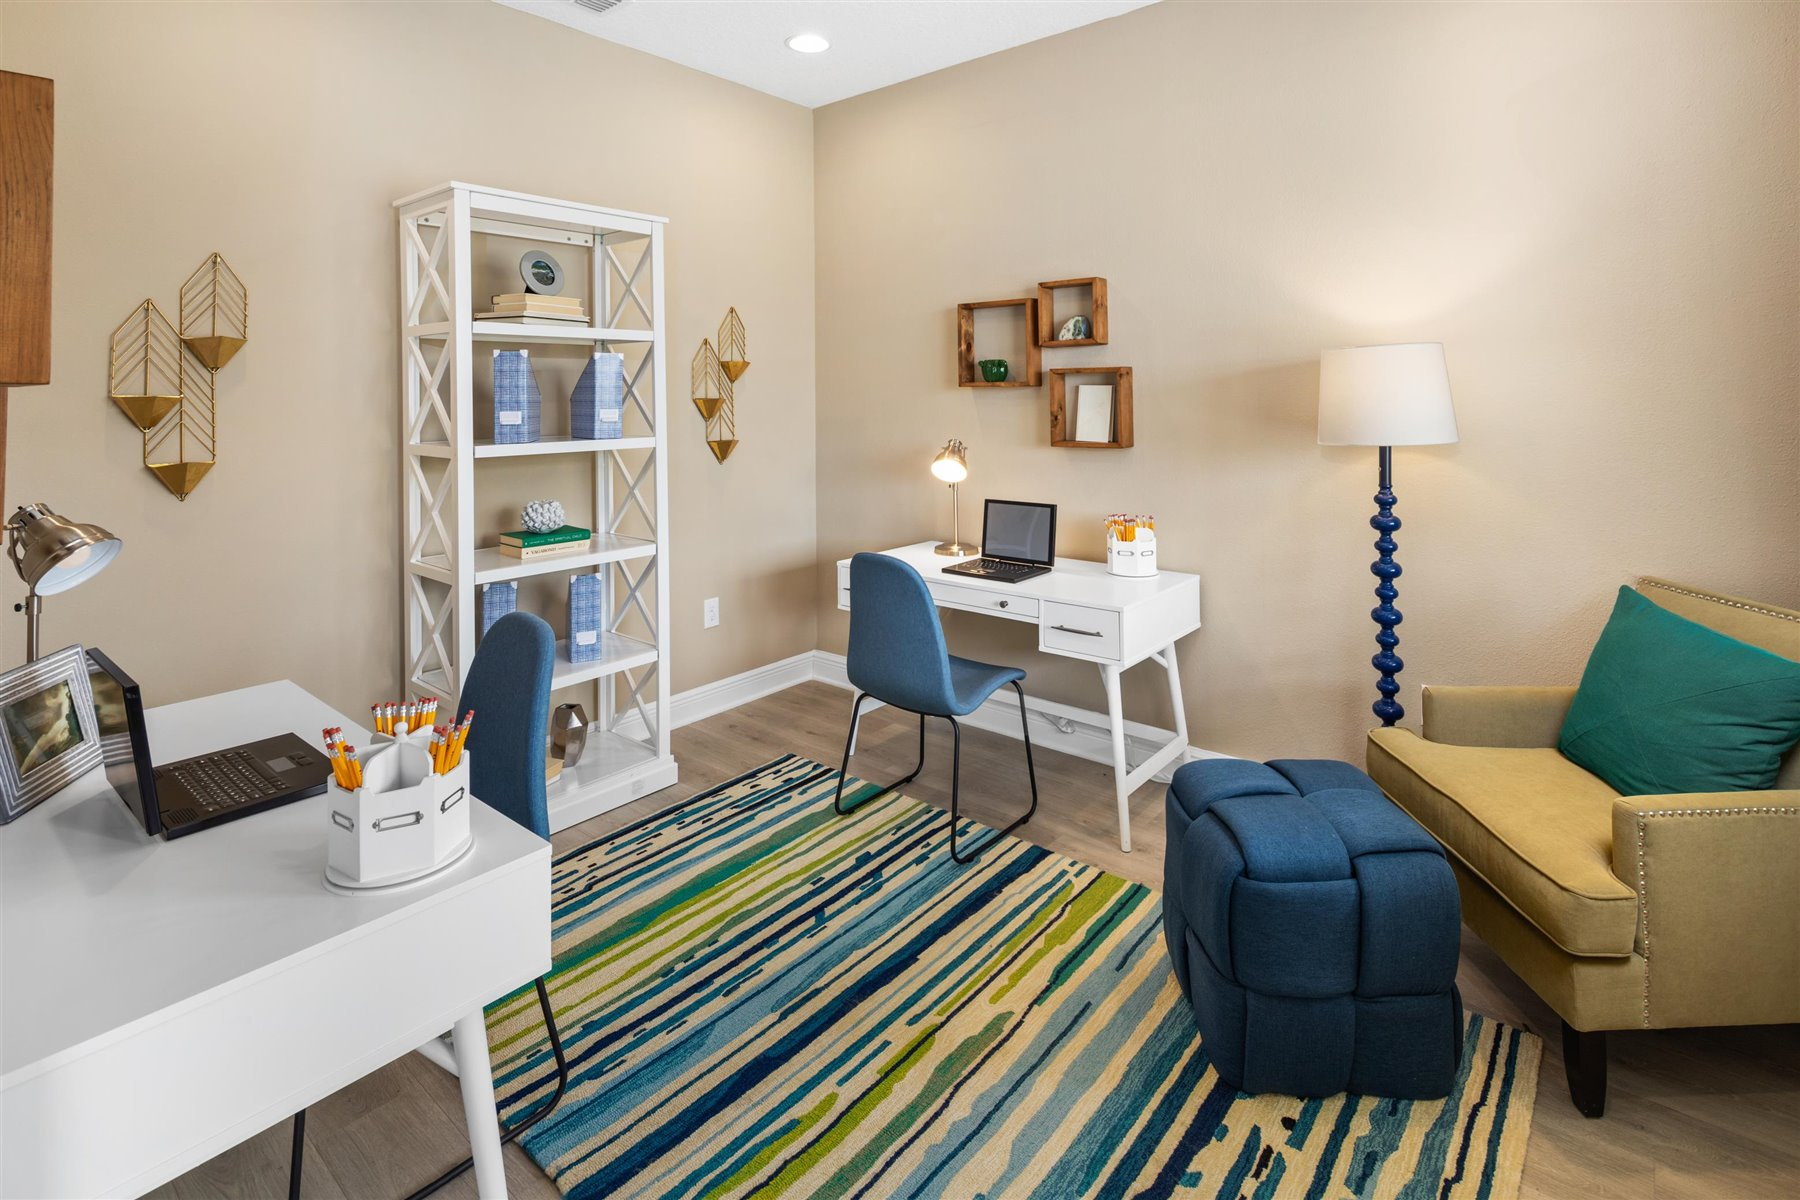 Avondale Plan Study Room at Tohoqua in Kissimmee Florida by Mattamy Homes